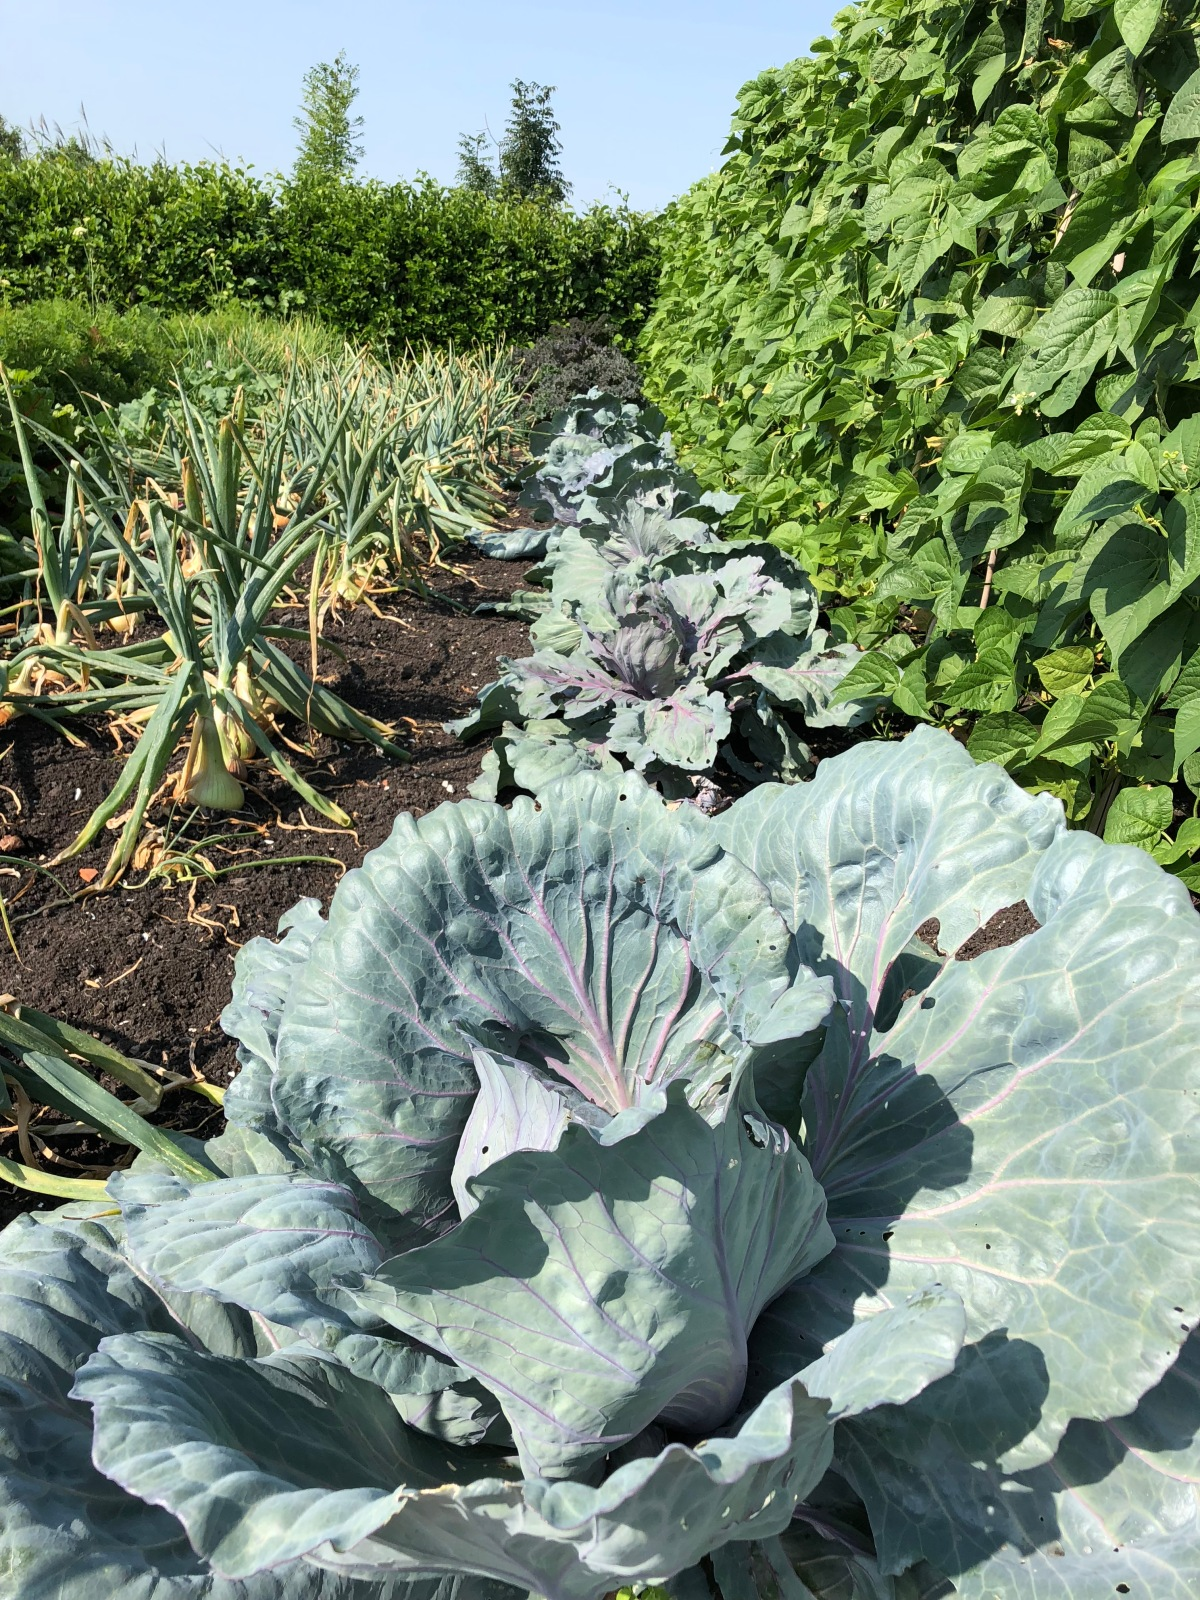 Cabbage and onions at Historische Tuin